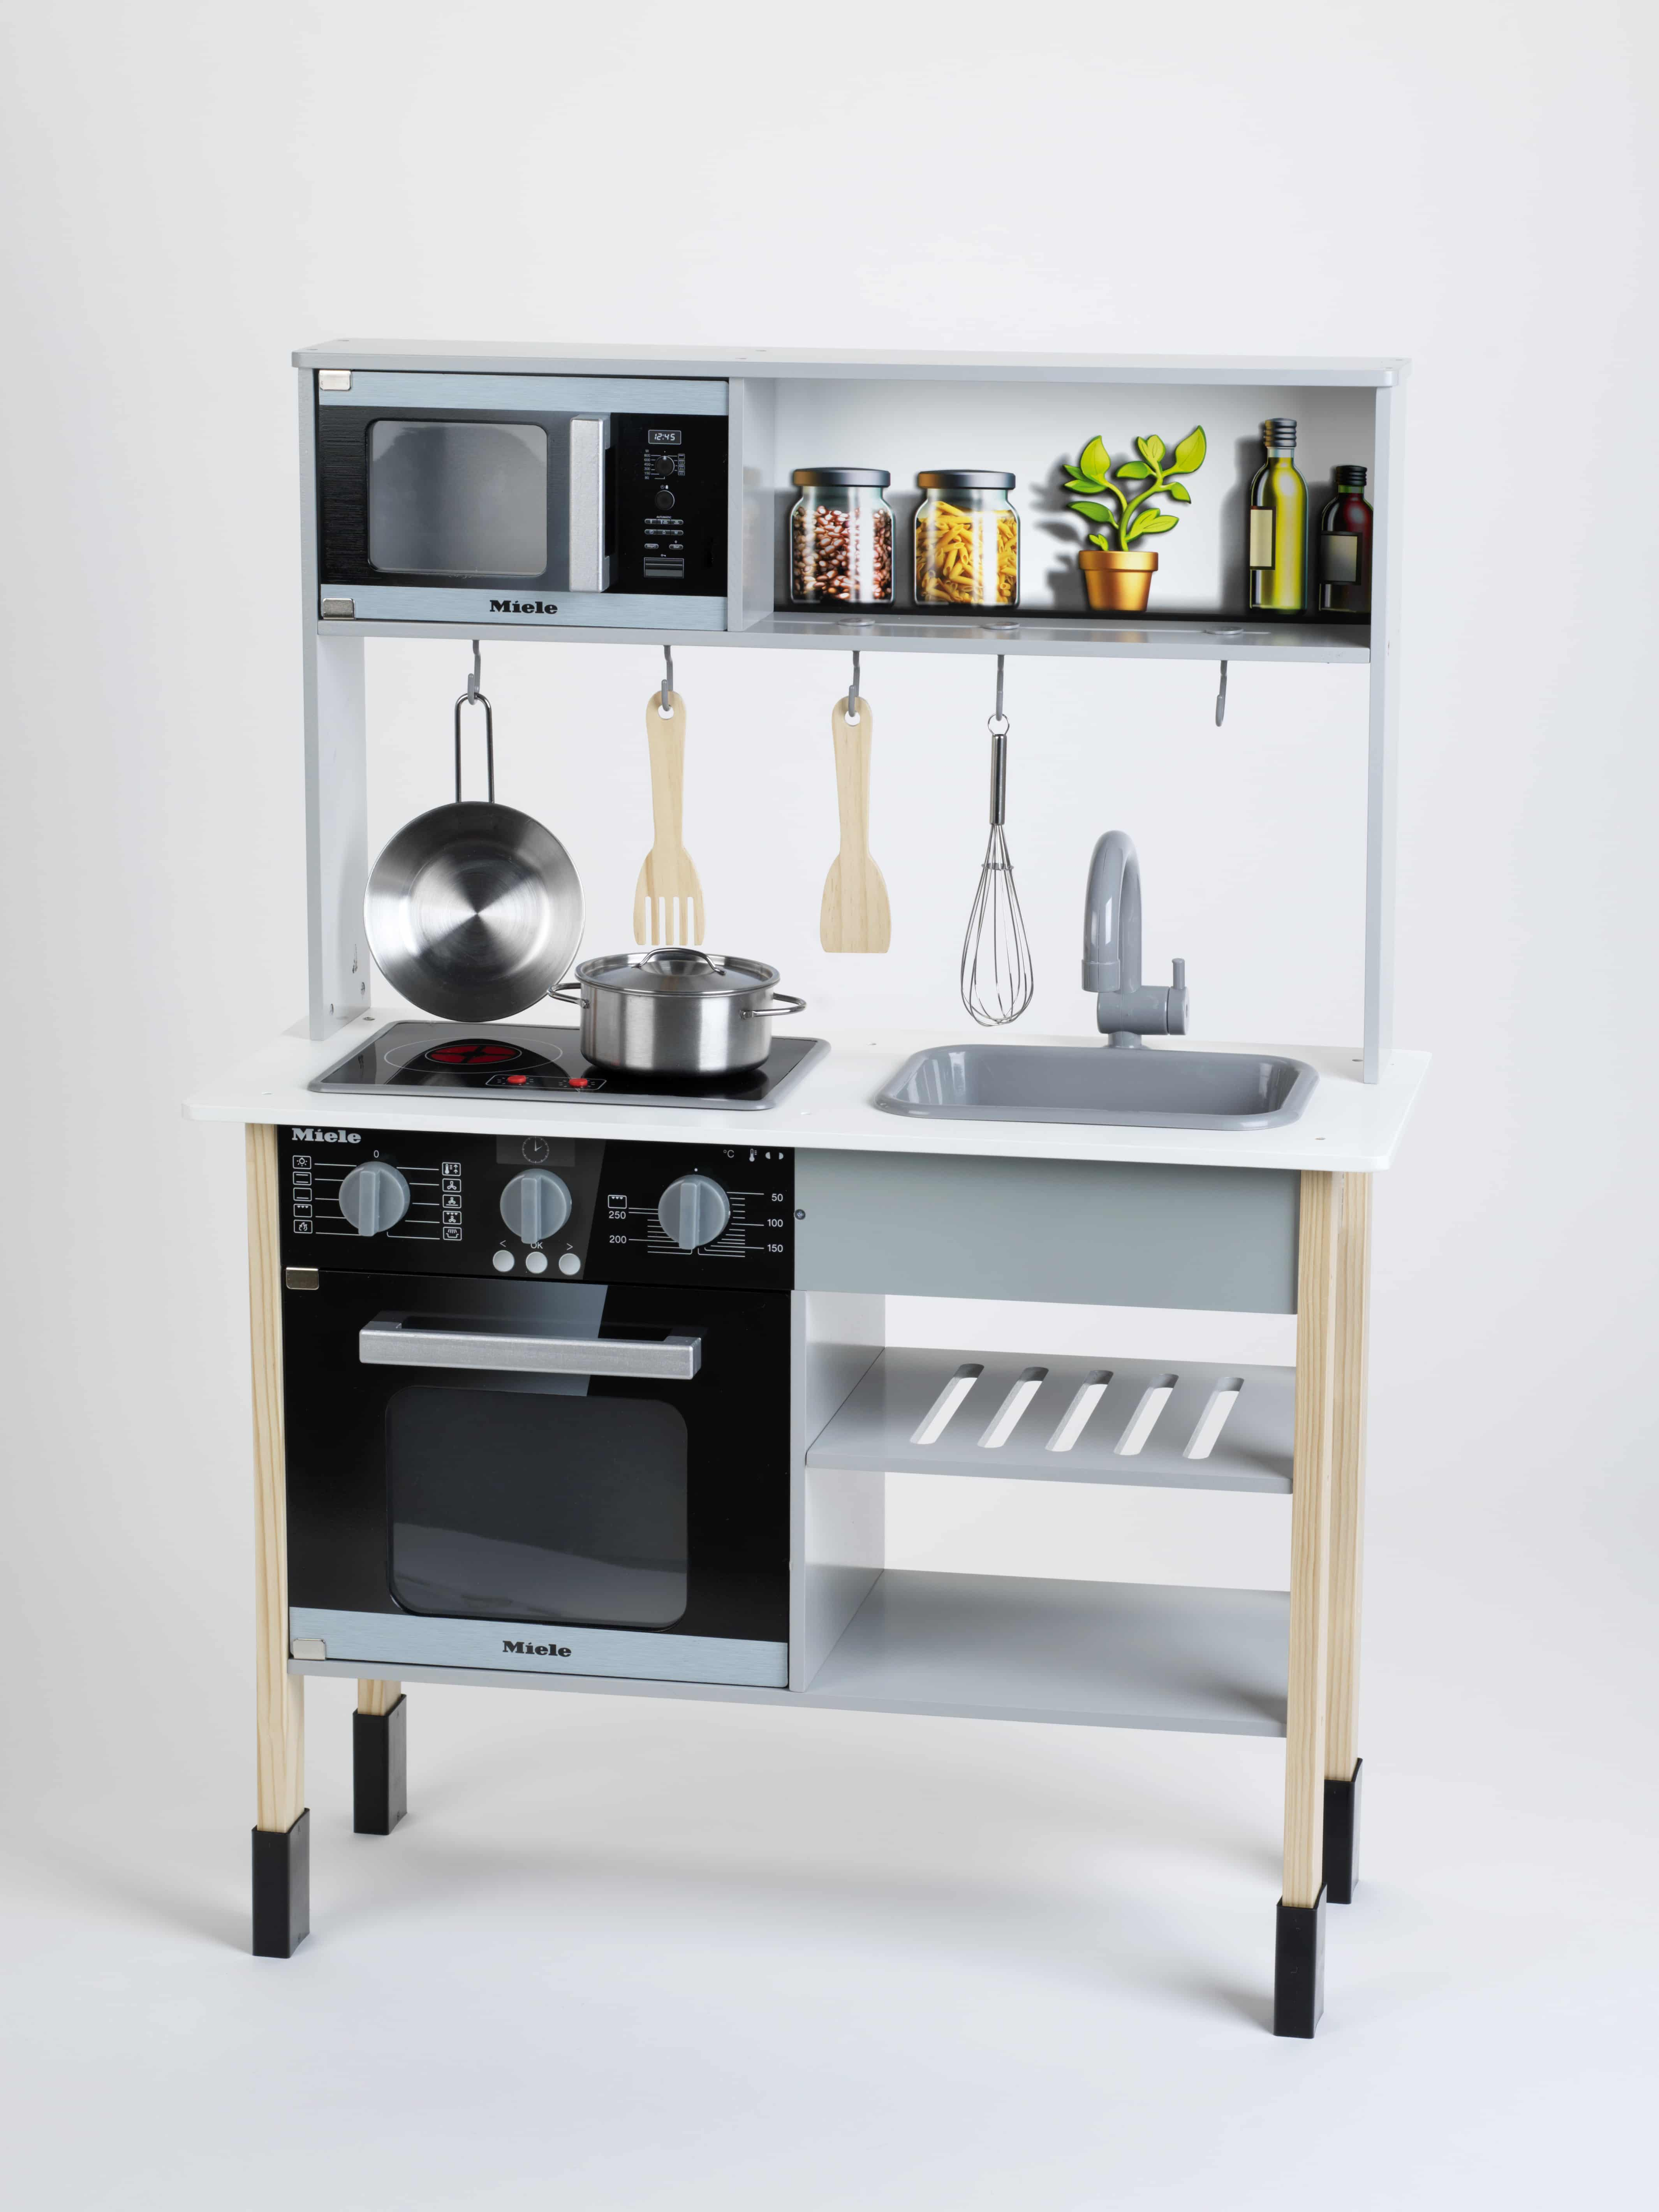 Toy Kitchen, Miele, Wood (MDF)